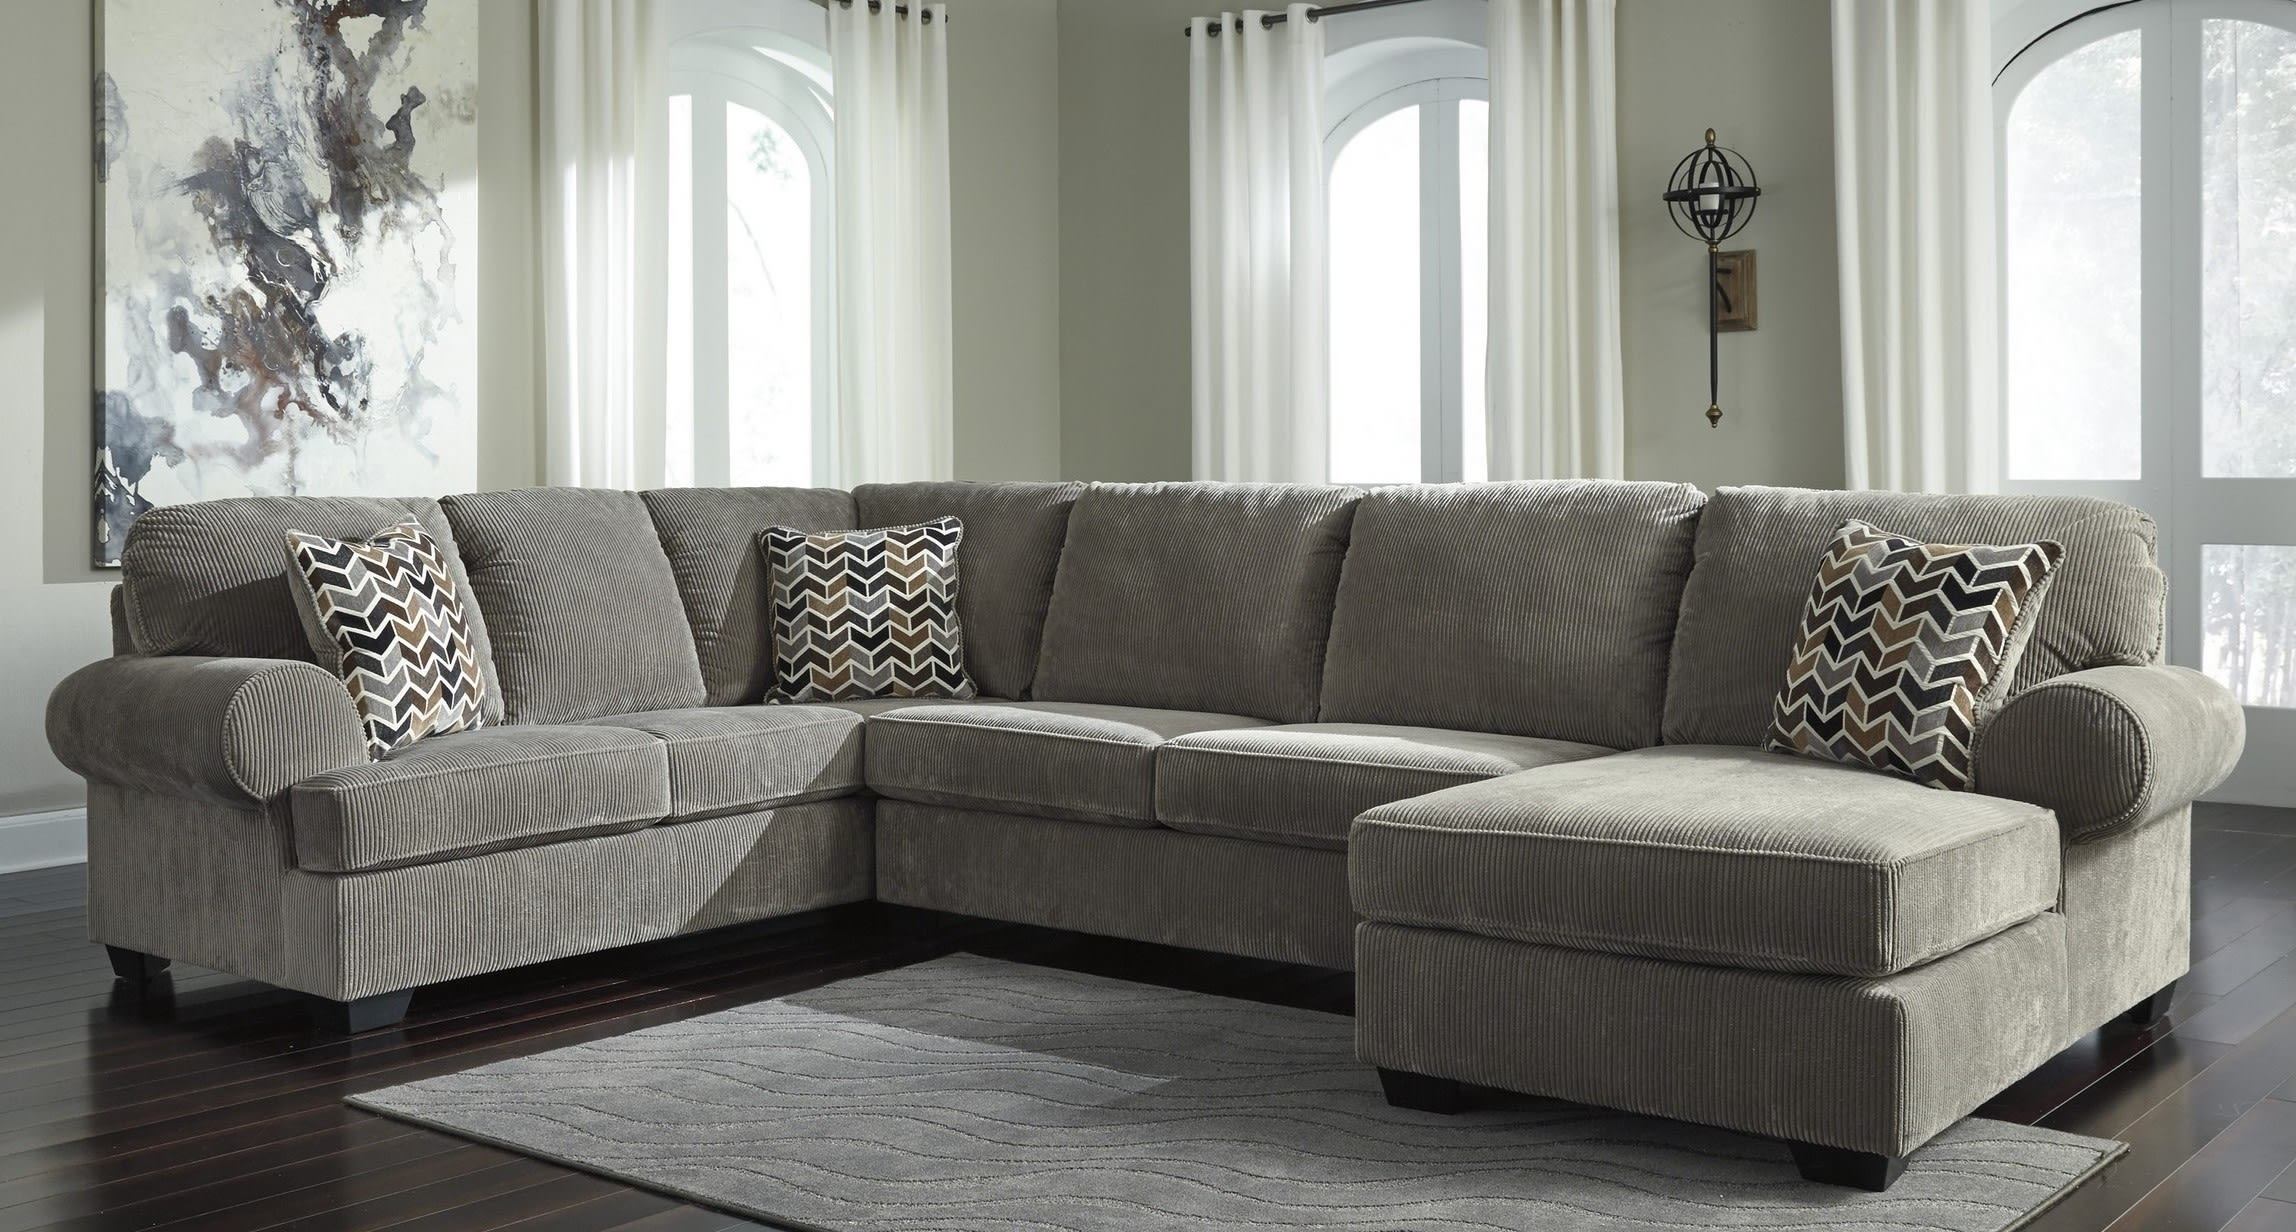 Signature Design By Ashley Jinllingsly Gray 3 Piece Sectional Sofa